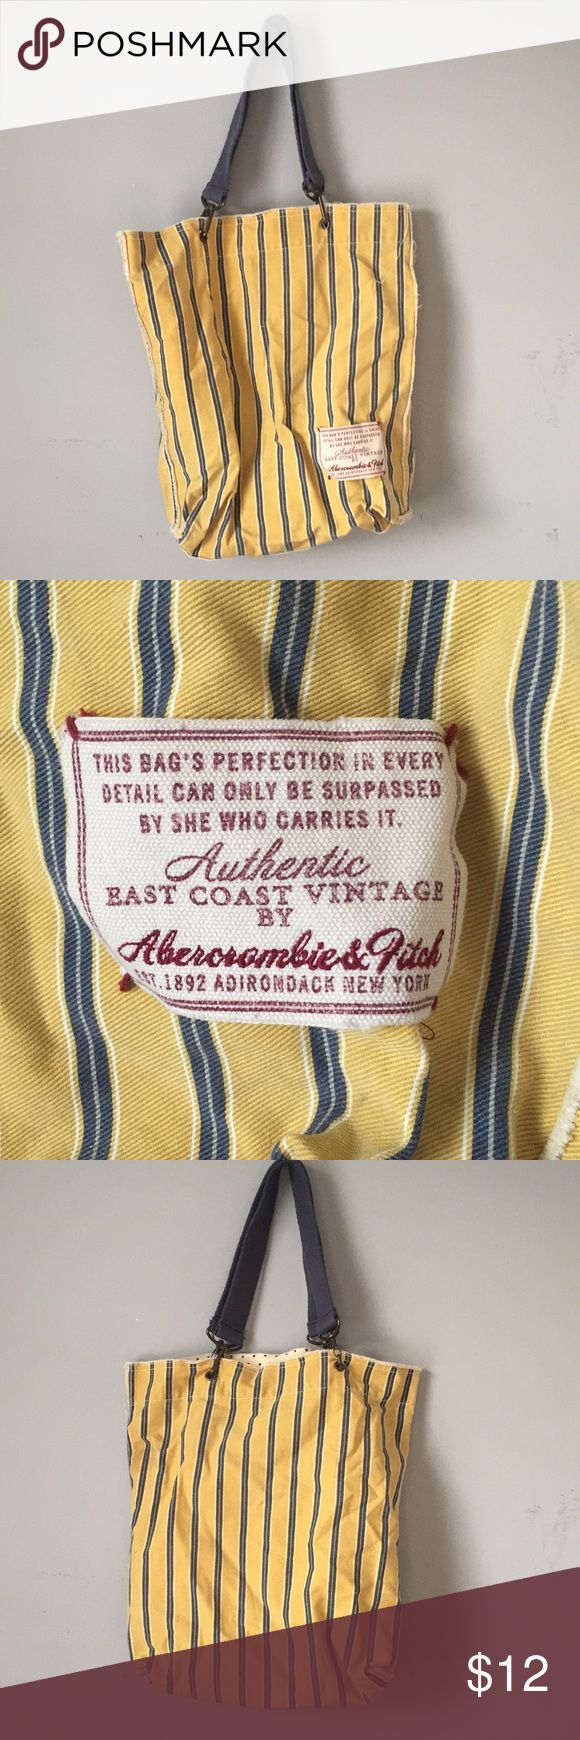 Cute Abercrombie and Fitch tote Super cute striped tote. Blue, yellow and white with pocket inside. Abercrombie & Fitch Bags Totes